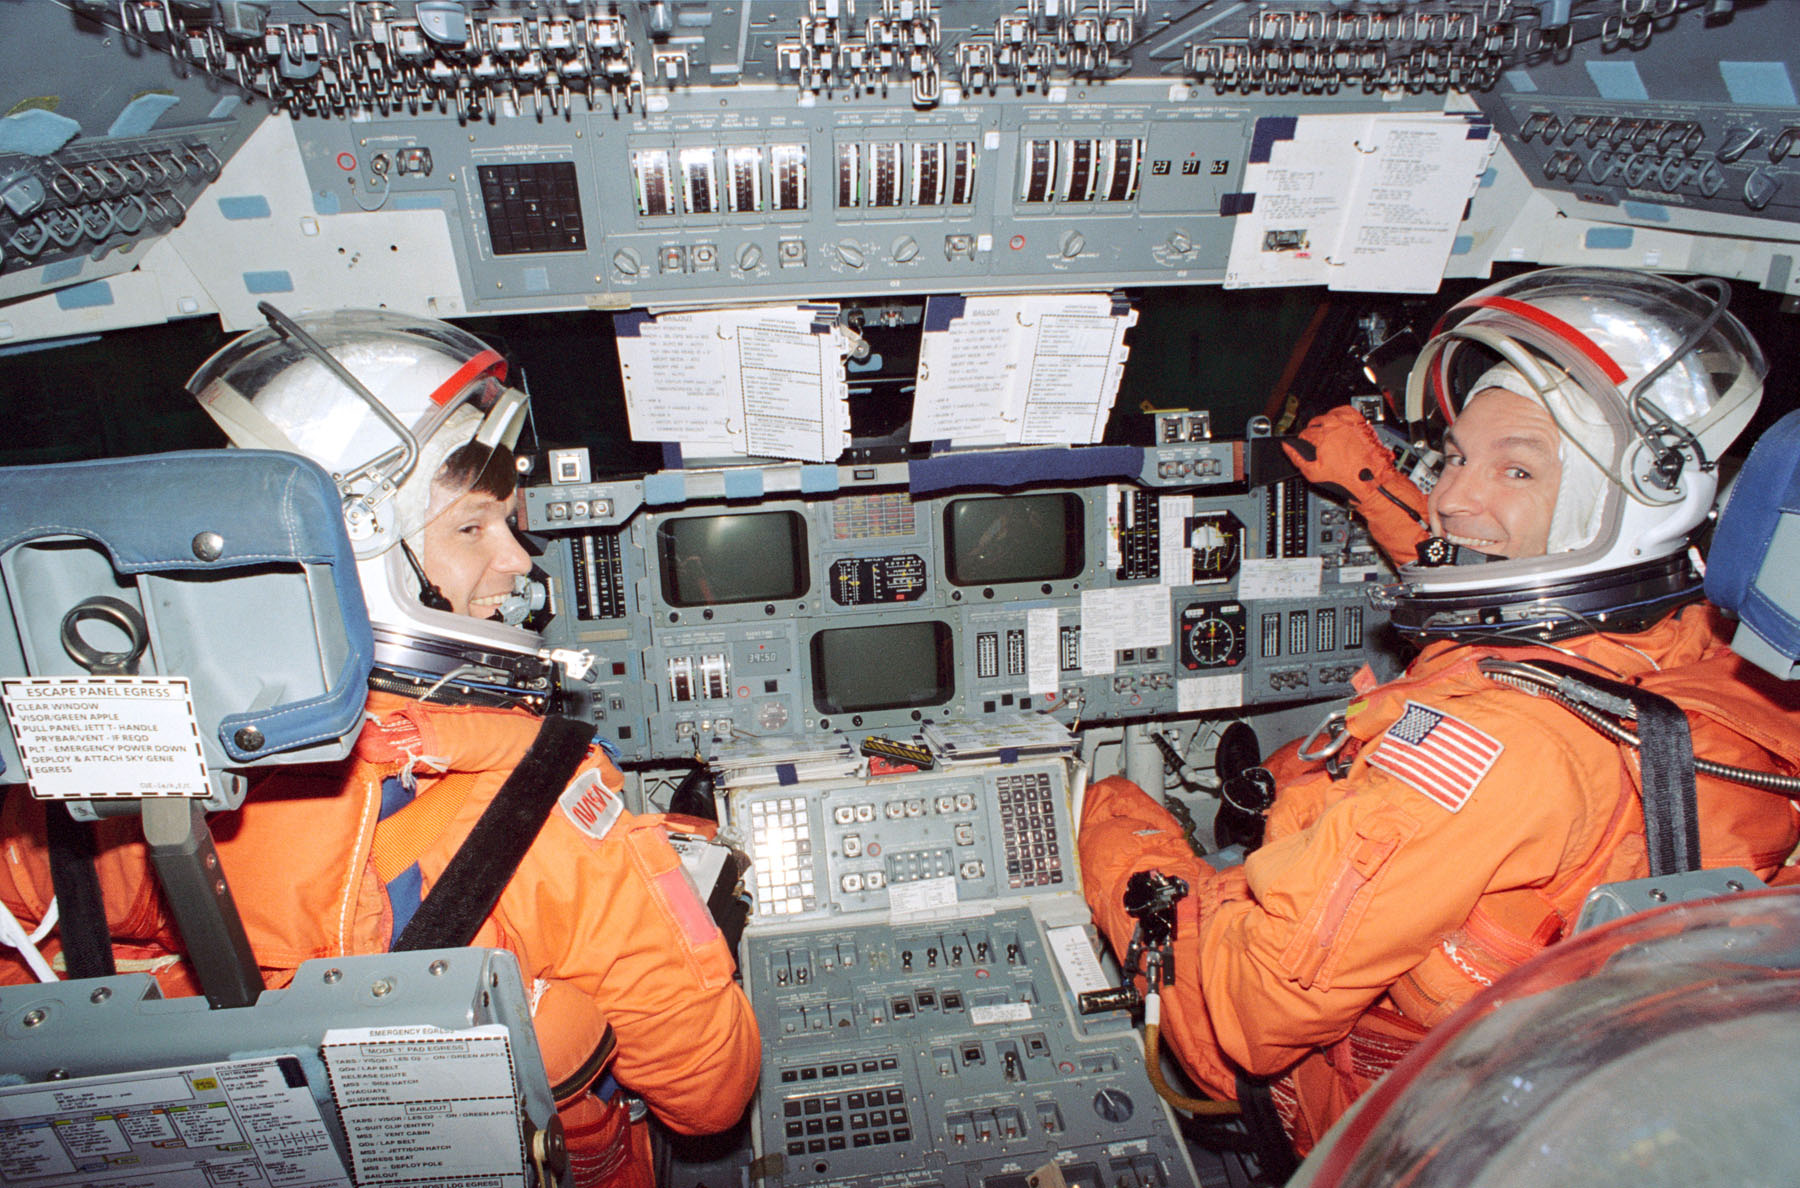 astronauts in a space shuttle - photo #10